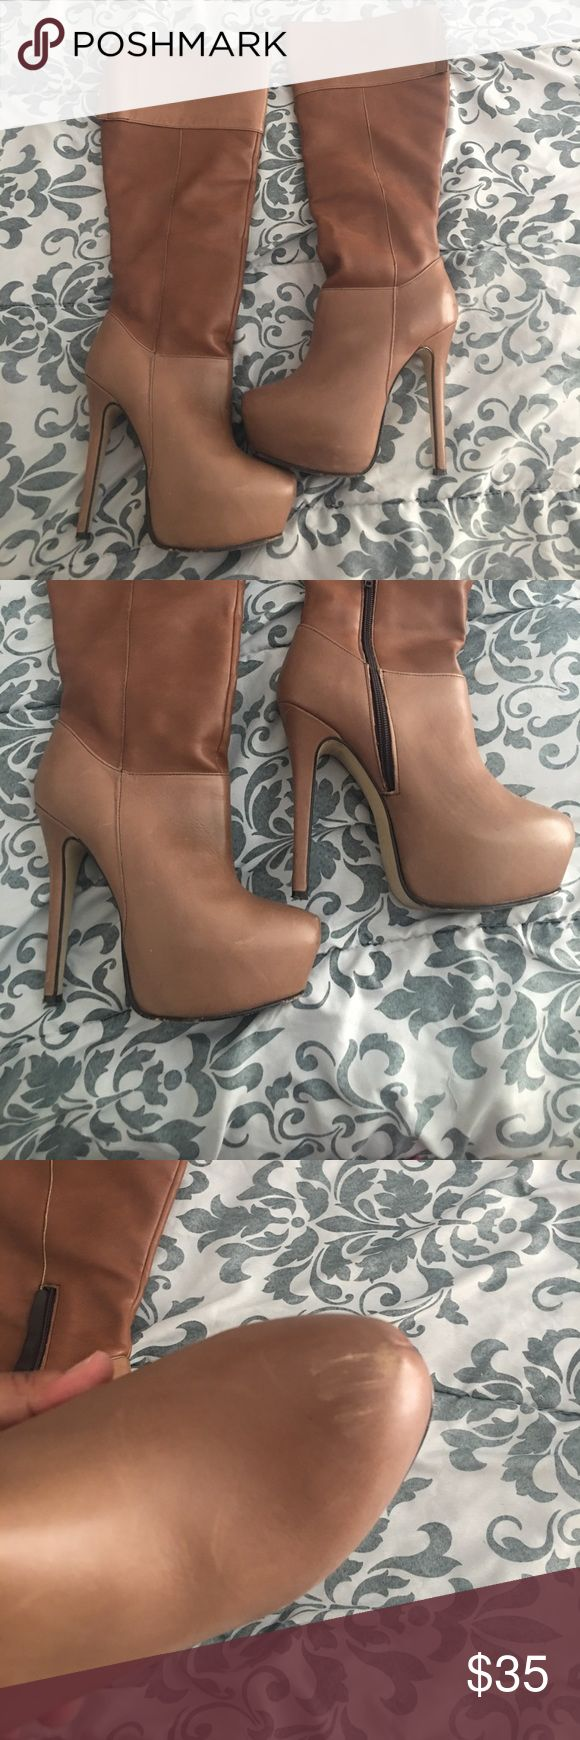 Camel high heel boots Size 7 high heel boots camel color wor them about 2 times has small scuff on the from not really noticeable posted picture of it. Make me an offer andrea Shoes Heeled Boots